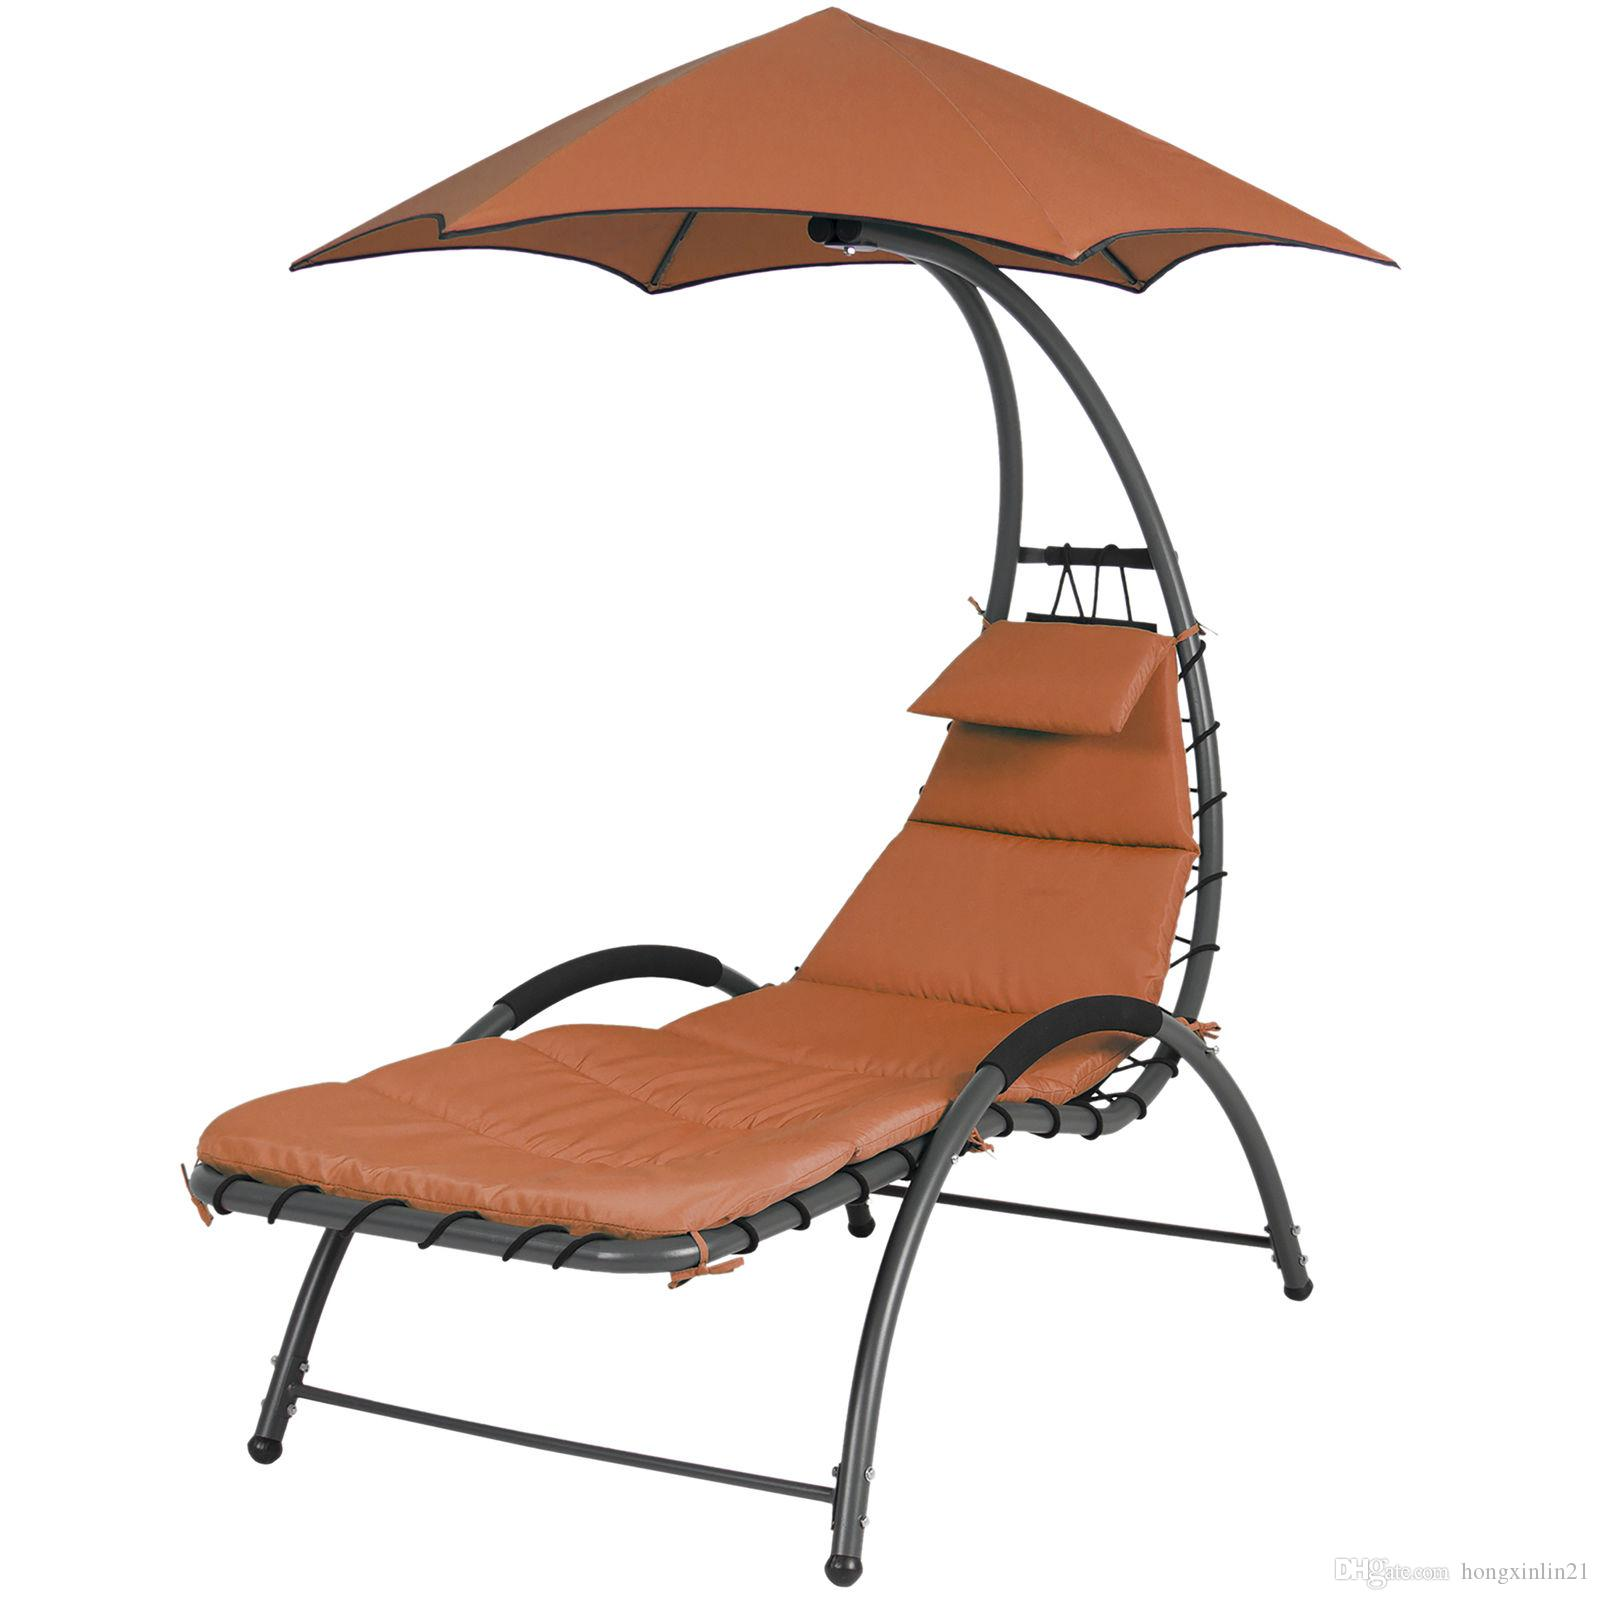 Online Cheap Arc Curved Hammock Dream Chaise Lounge Chair Outdoor Patio Pool  Furniture Orange By Hongxinlin21 | Dhgate.Com